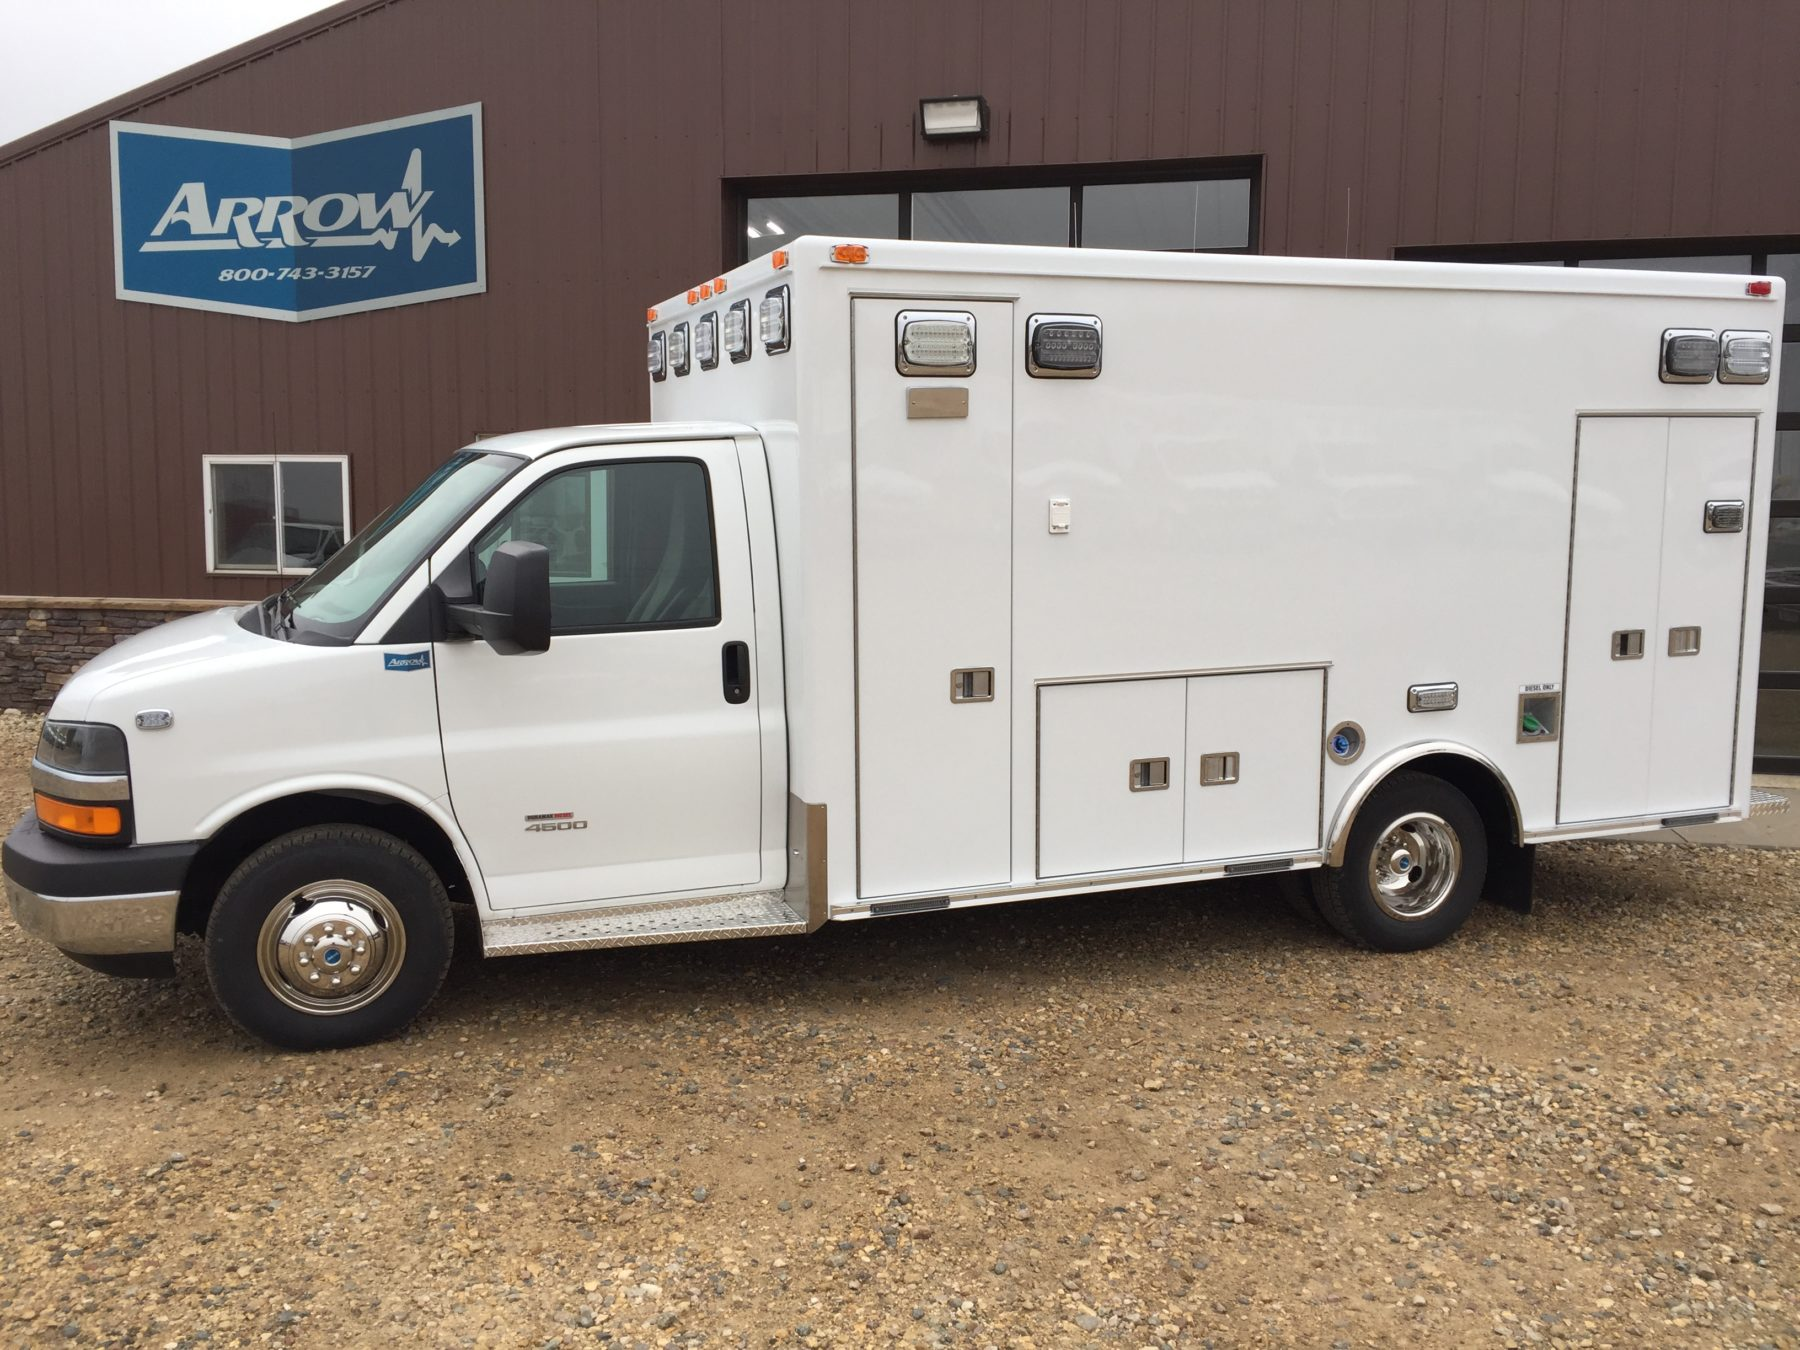 2016 Chevrolet G4500 Type 3 Ambulance For Sale – Picture 4